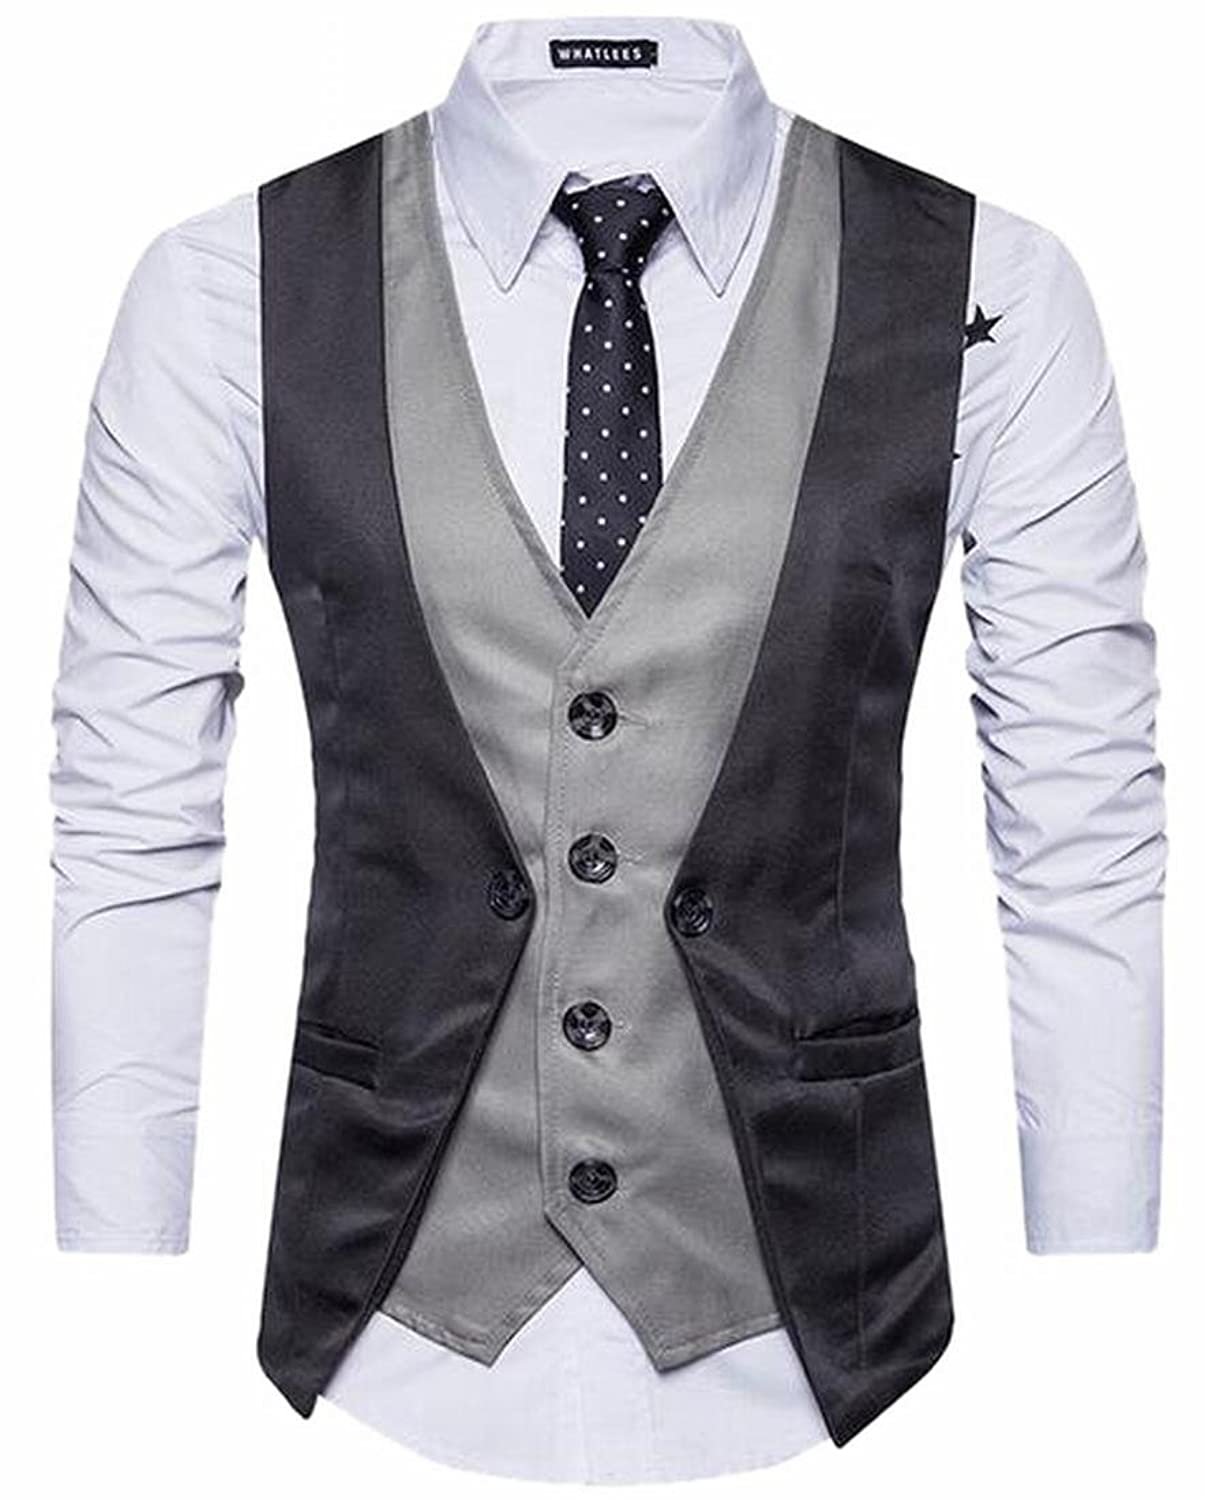 1bef3e702 Jaycargogo Men s Casual V-neck Sleeveless Slim Fit Jacket Business Suit  Vests